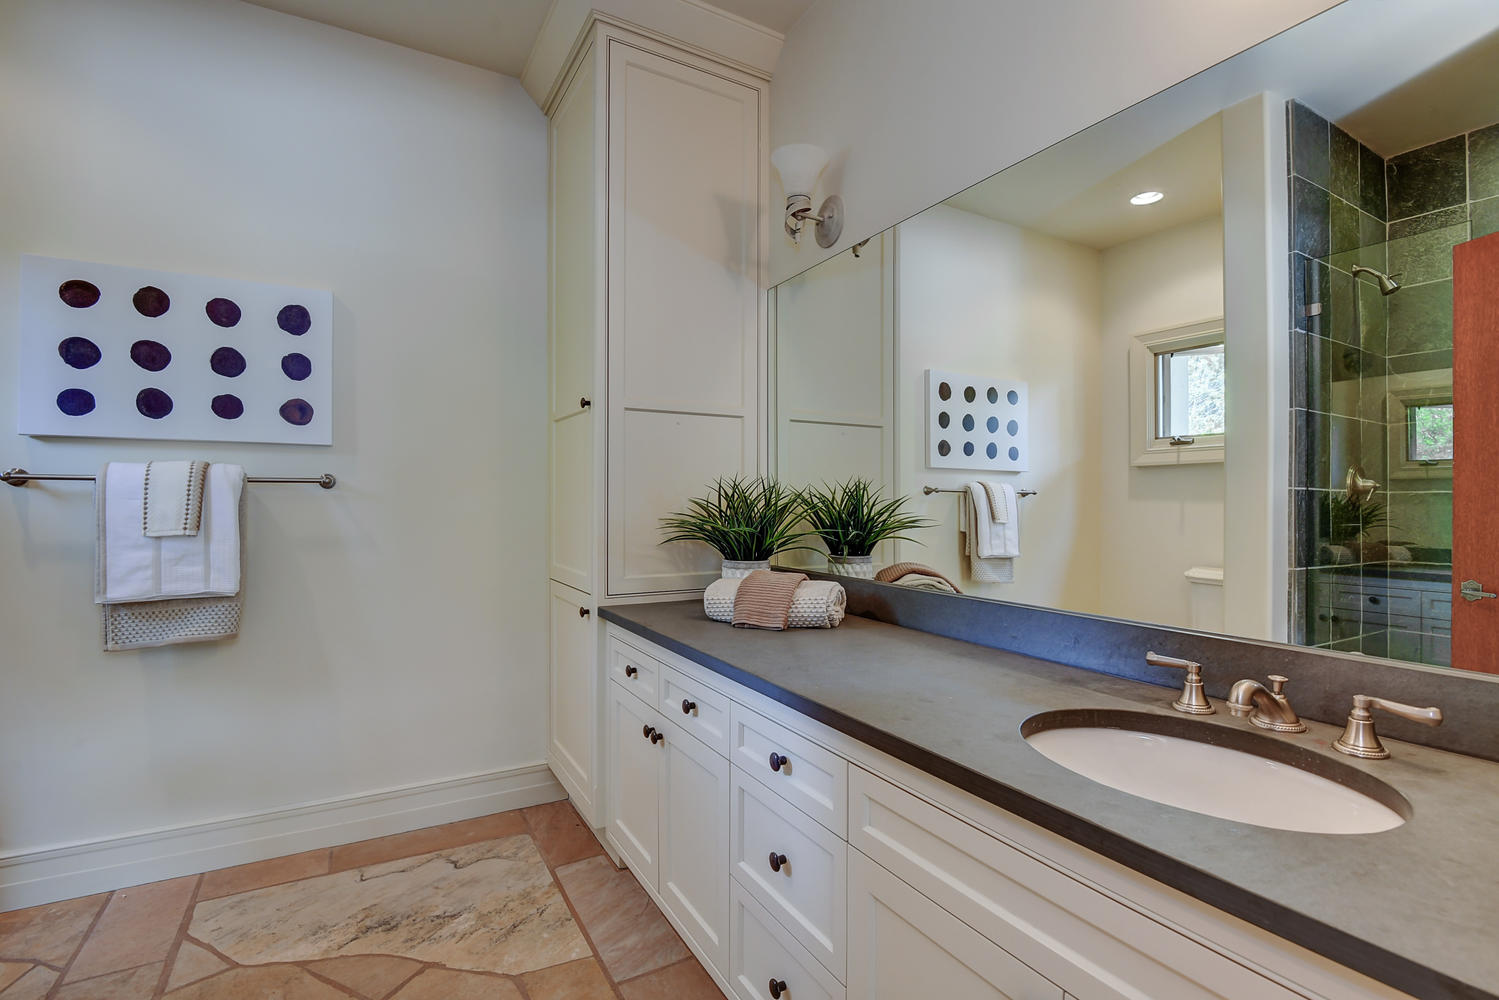 39_14833 Karl Ave Monte Sereno CA-large-061-75-Pool House Bathroom-1500x1000-72dpi.jpg